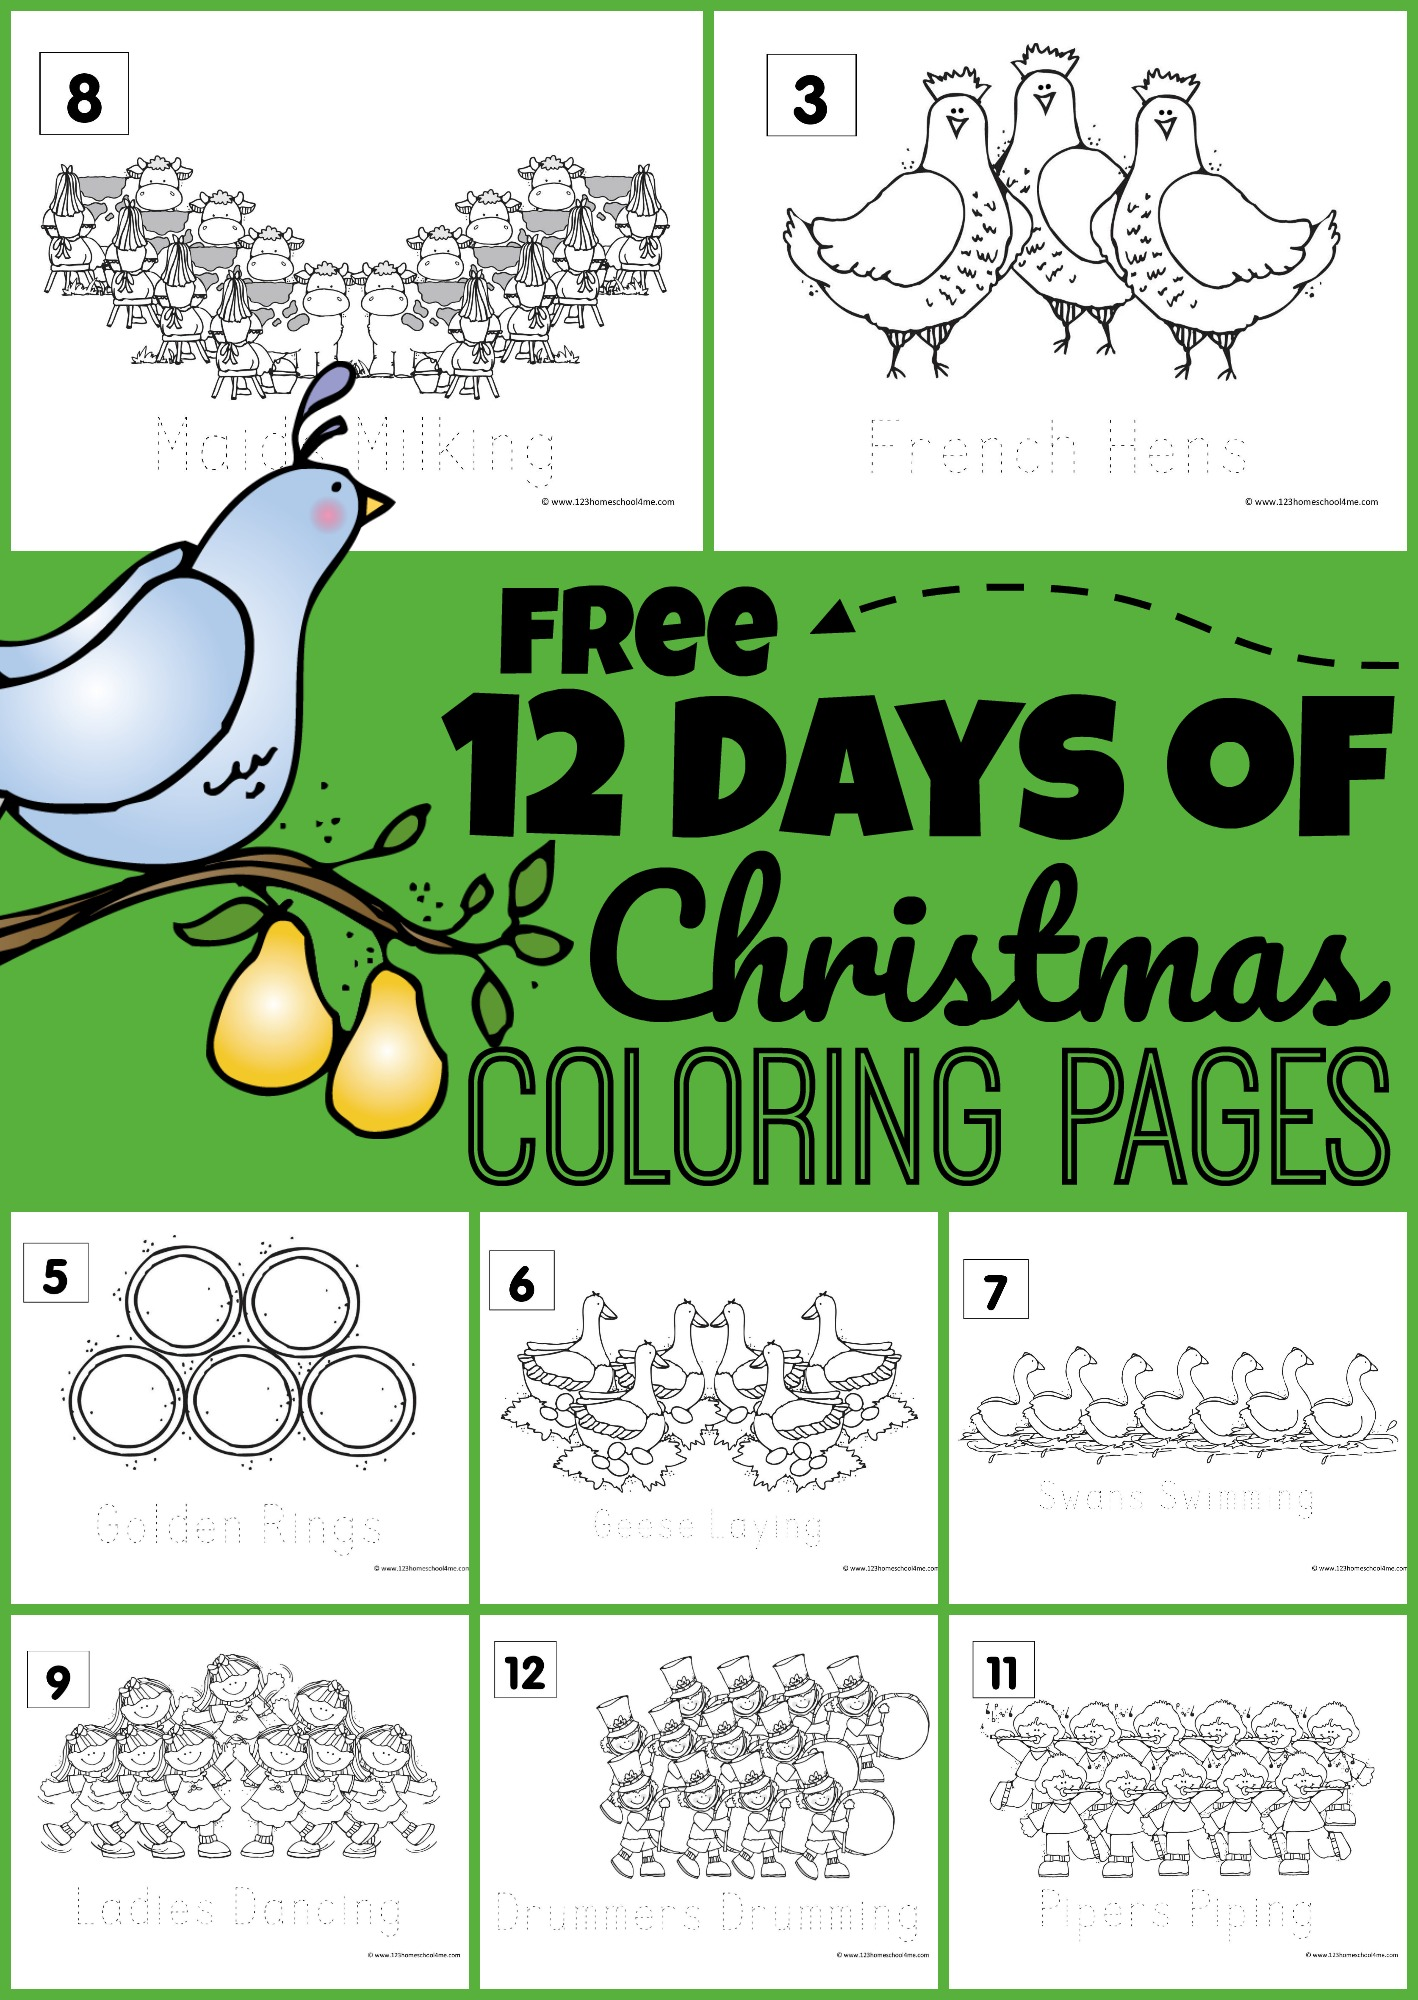 Free 12 Days Of Christmas Coloring Pages